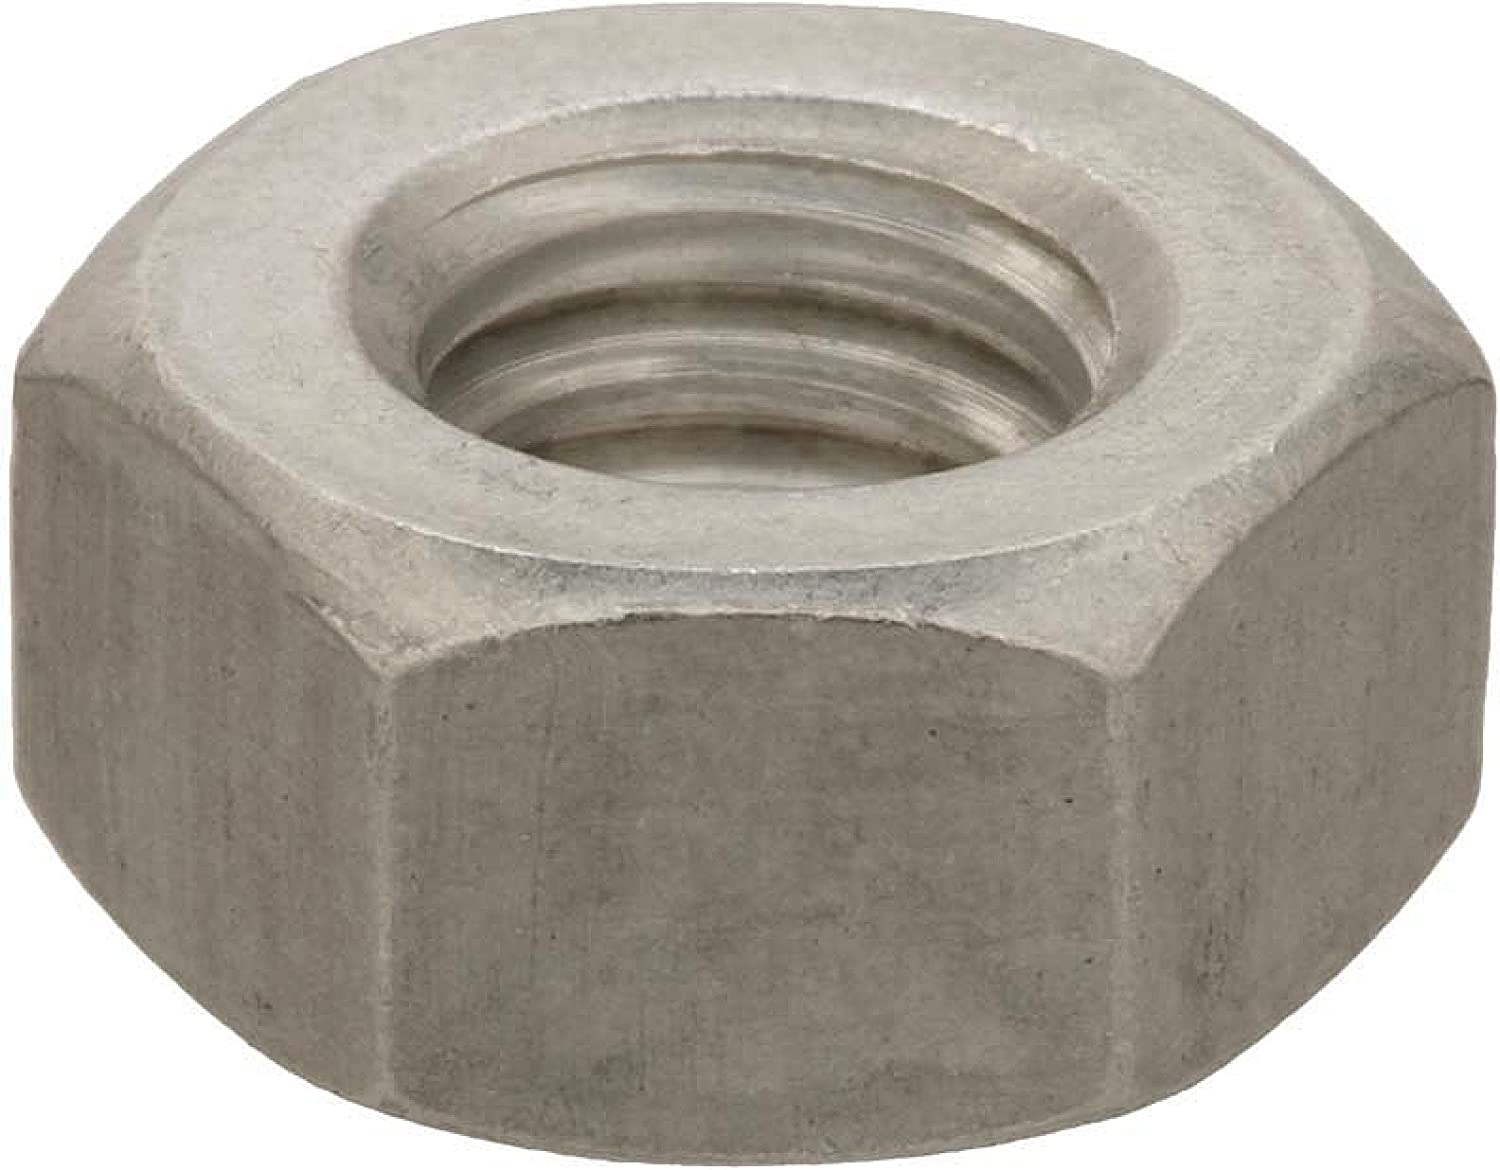 50-Count Crown Bolt 07580 5//8 Inch Coarse Thread Hot Dipped Galvanized Steel Hex Nuts